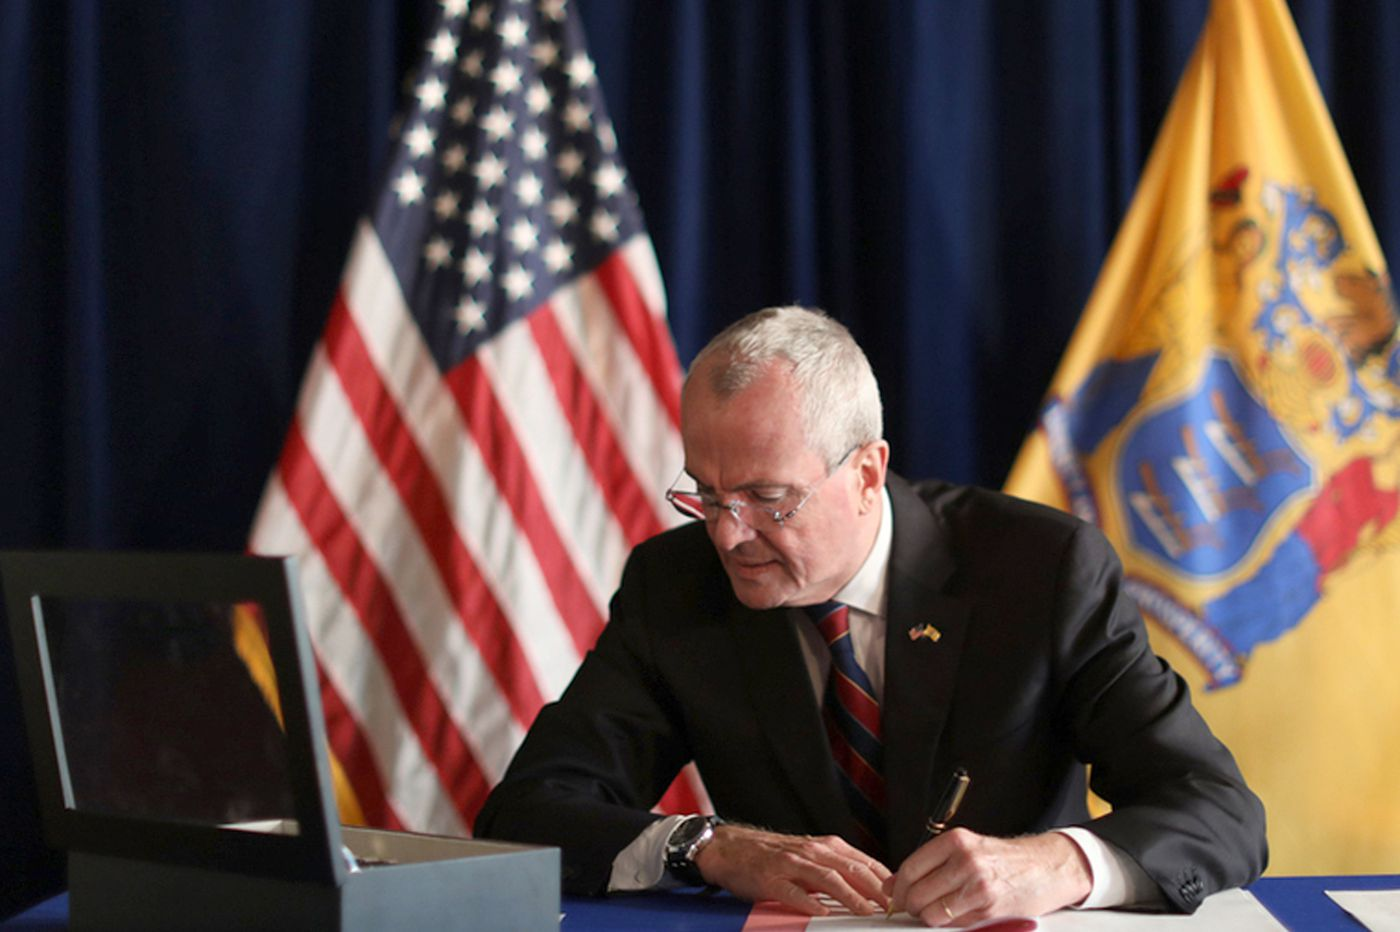 Gov. Murphy signs N.J. death with dignity bill. It goes into effect Aug. 1.